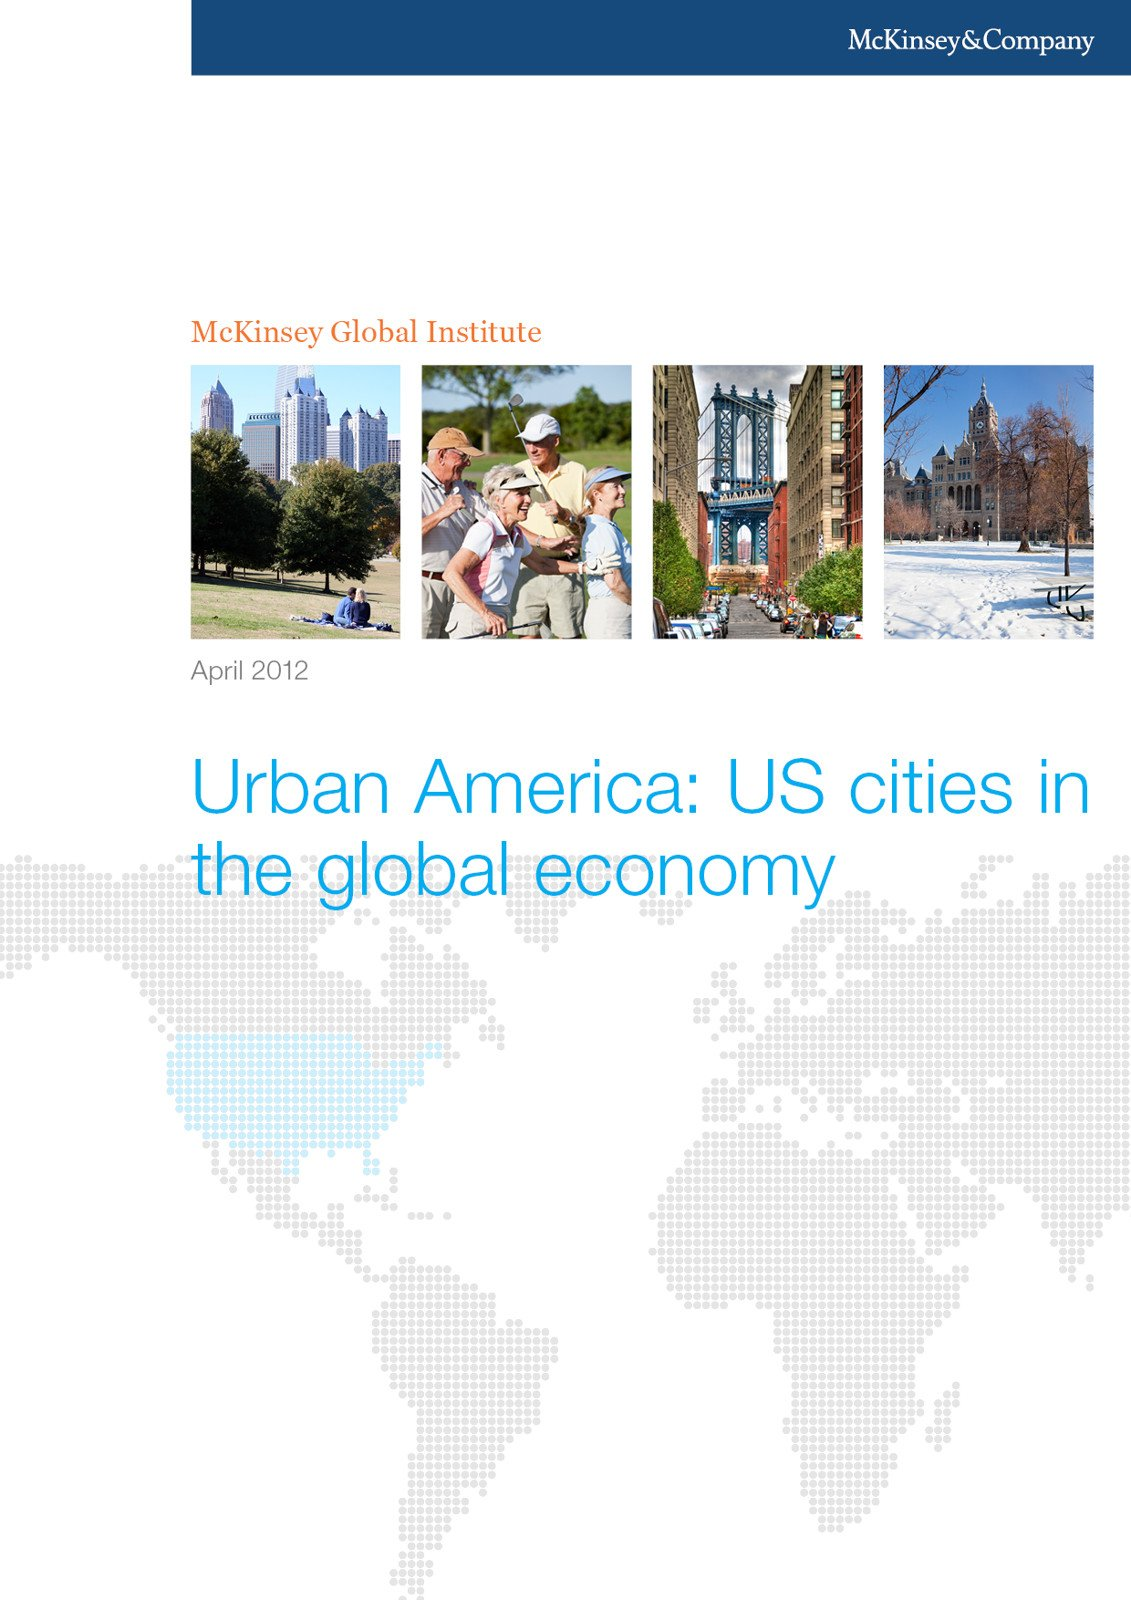 Urban America: US cities in the global economy